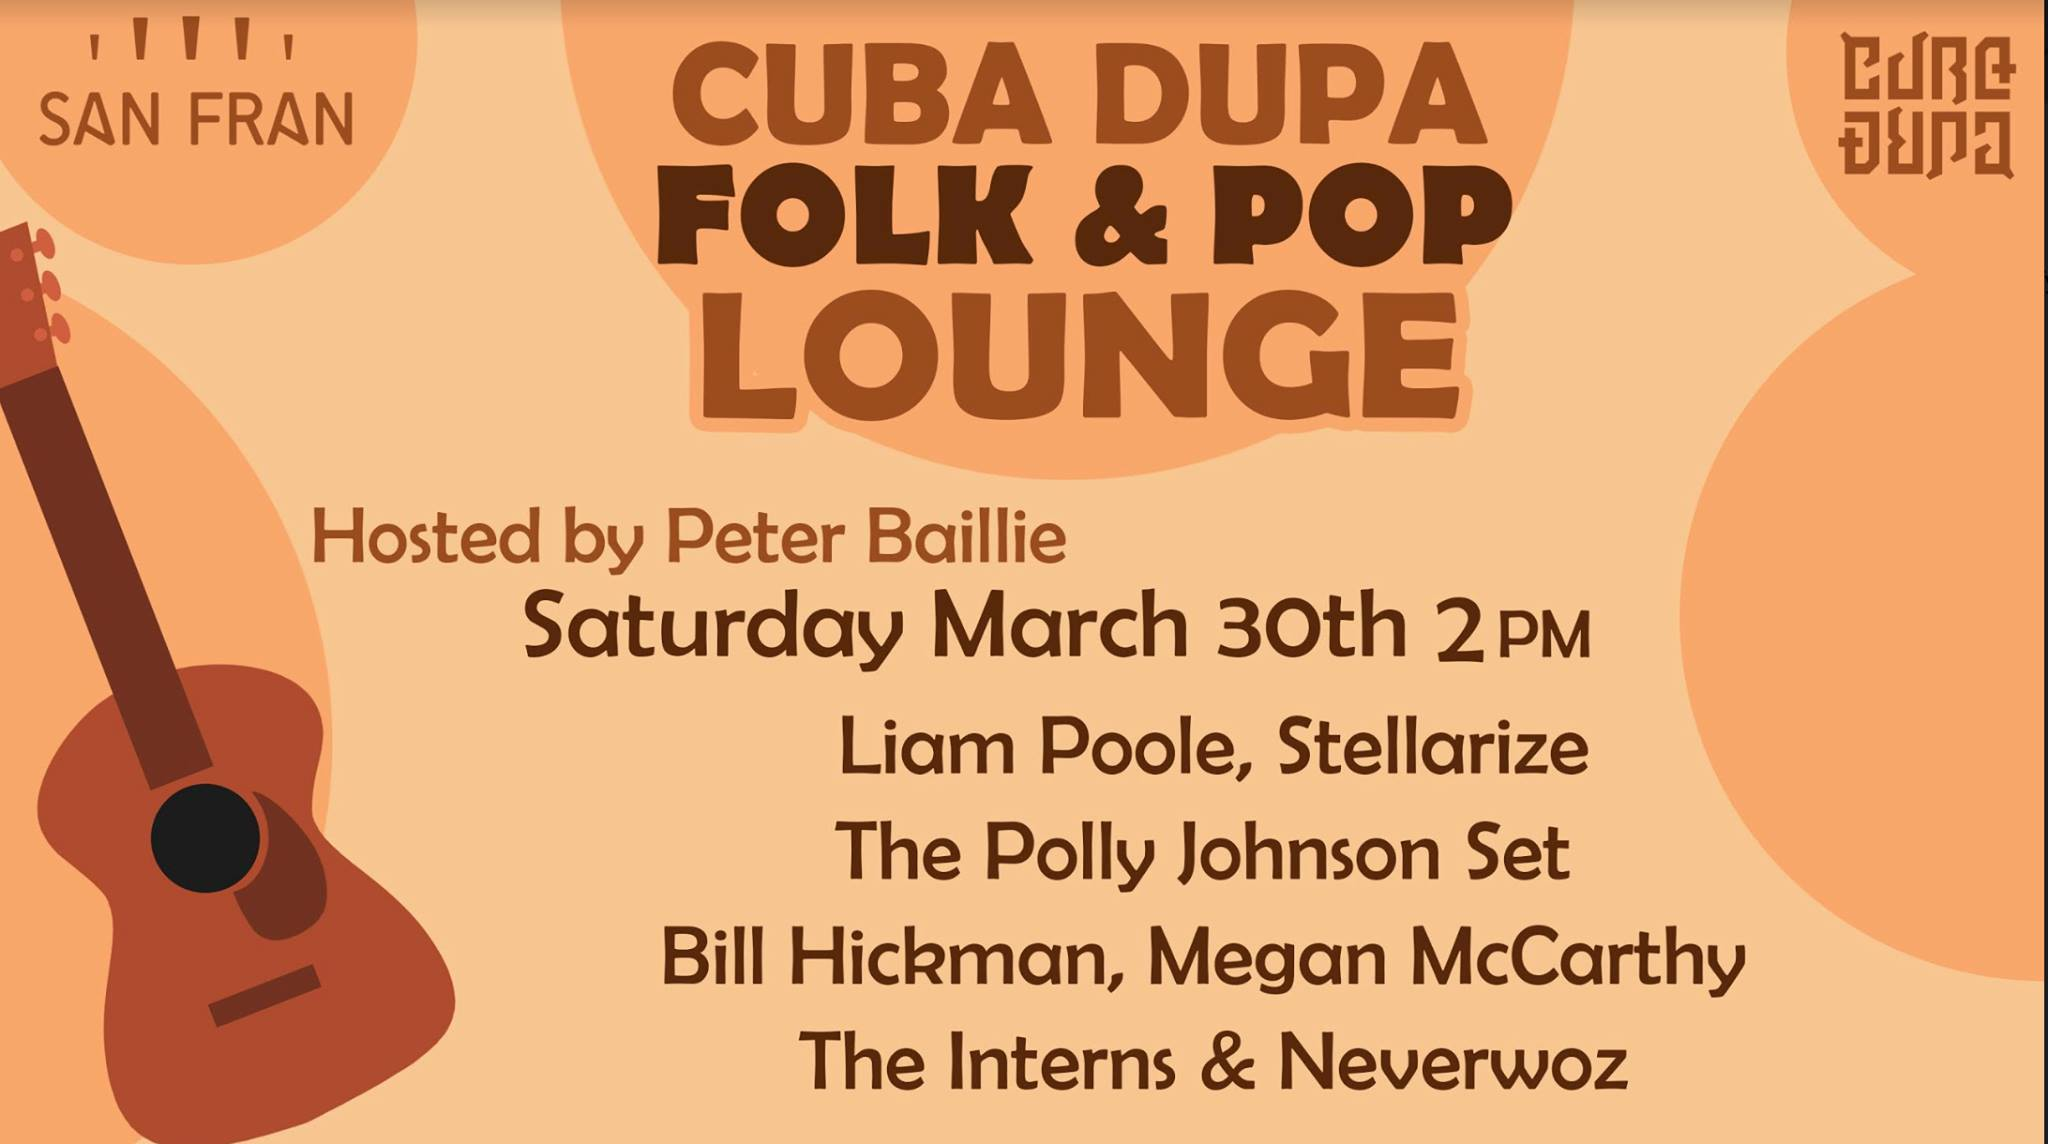 Cubadupa Folk And Pop Lounge